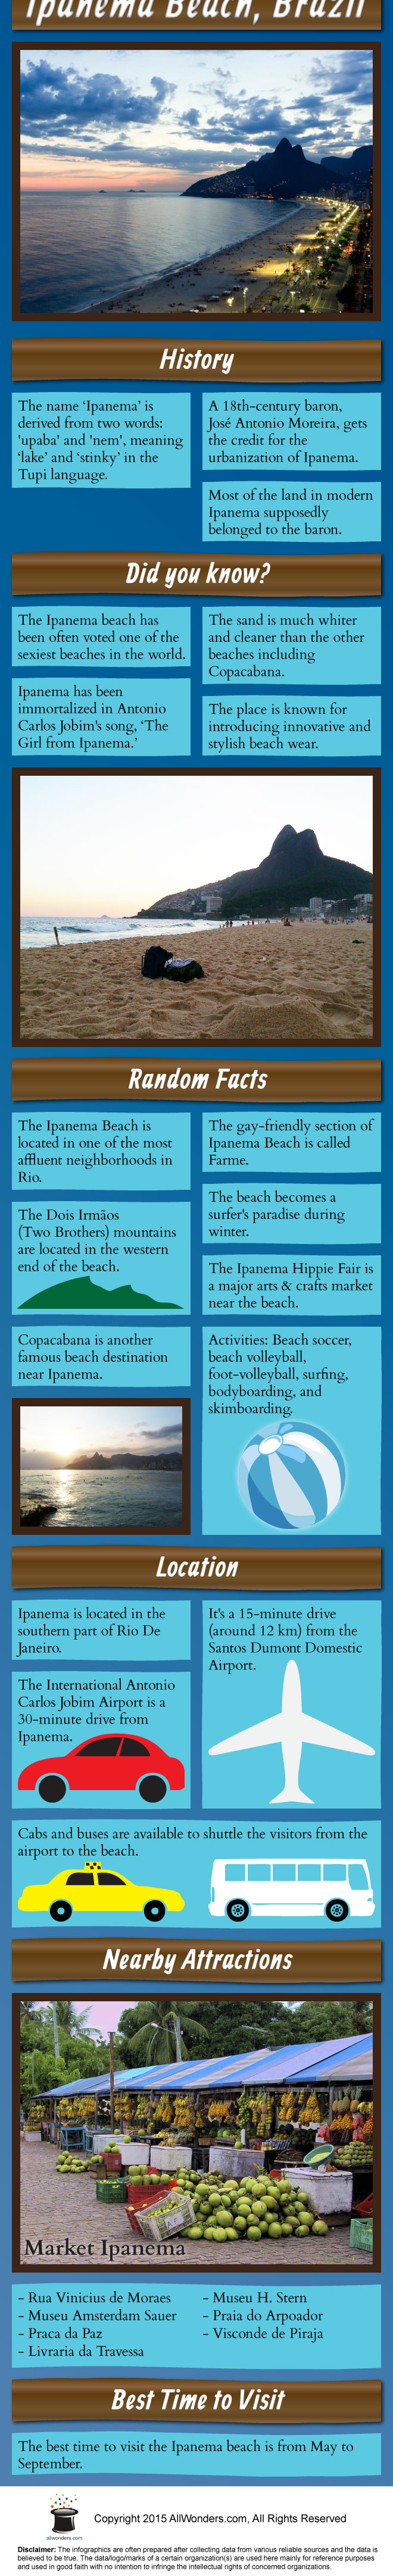 Ipanema Beach Infographic